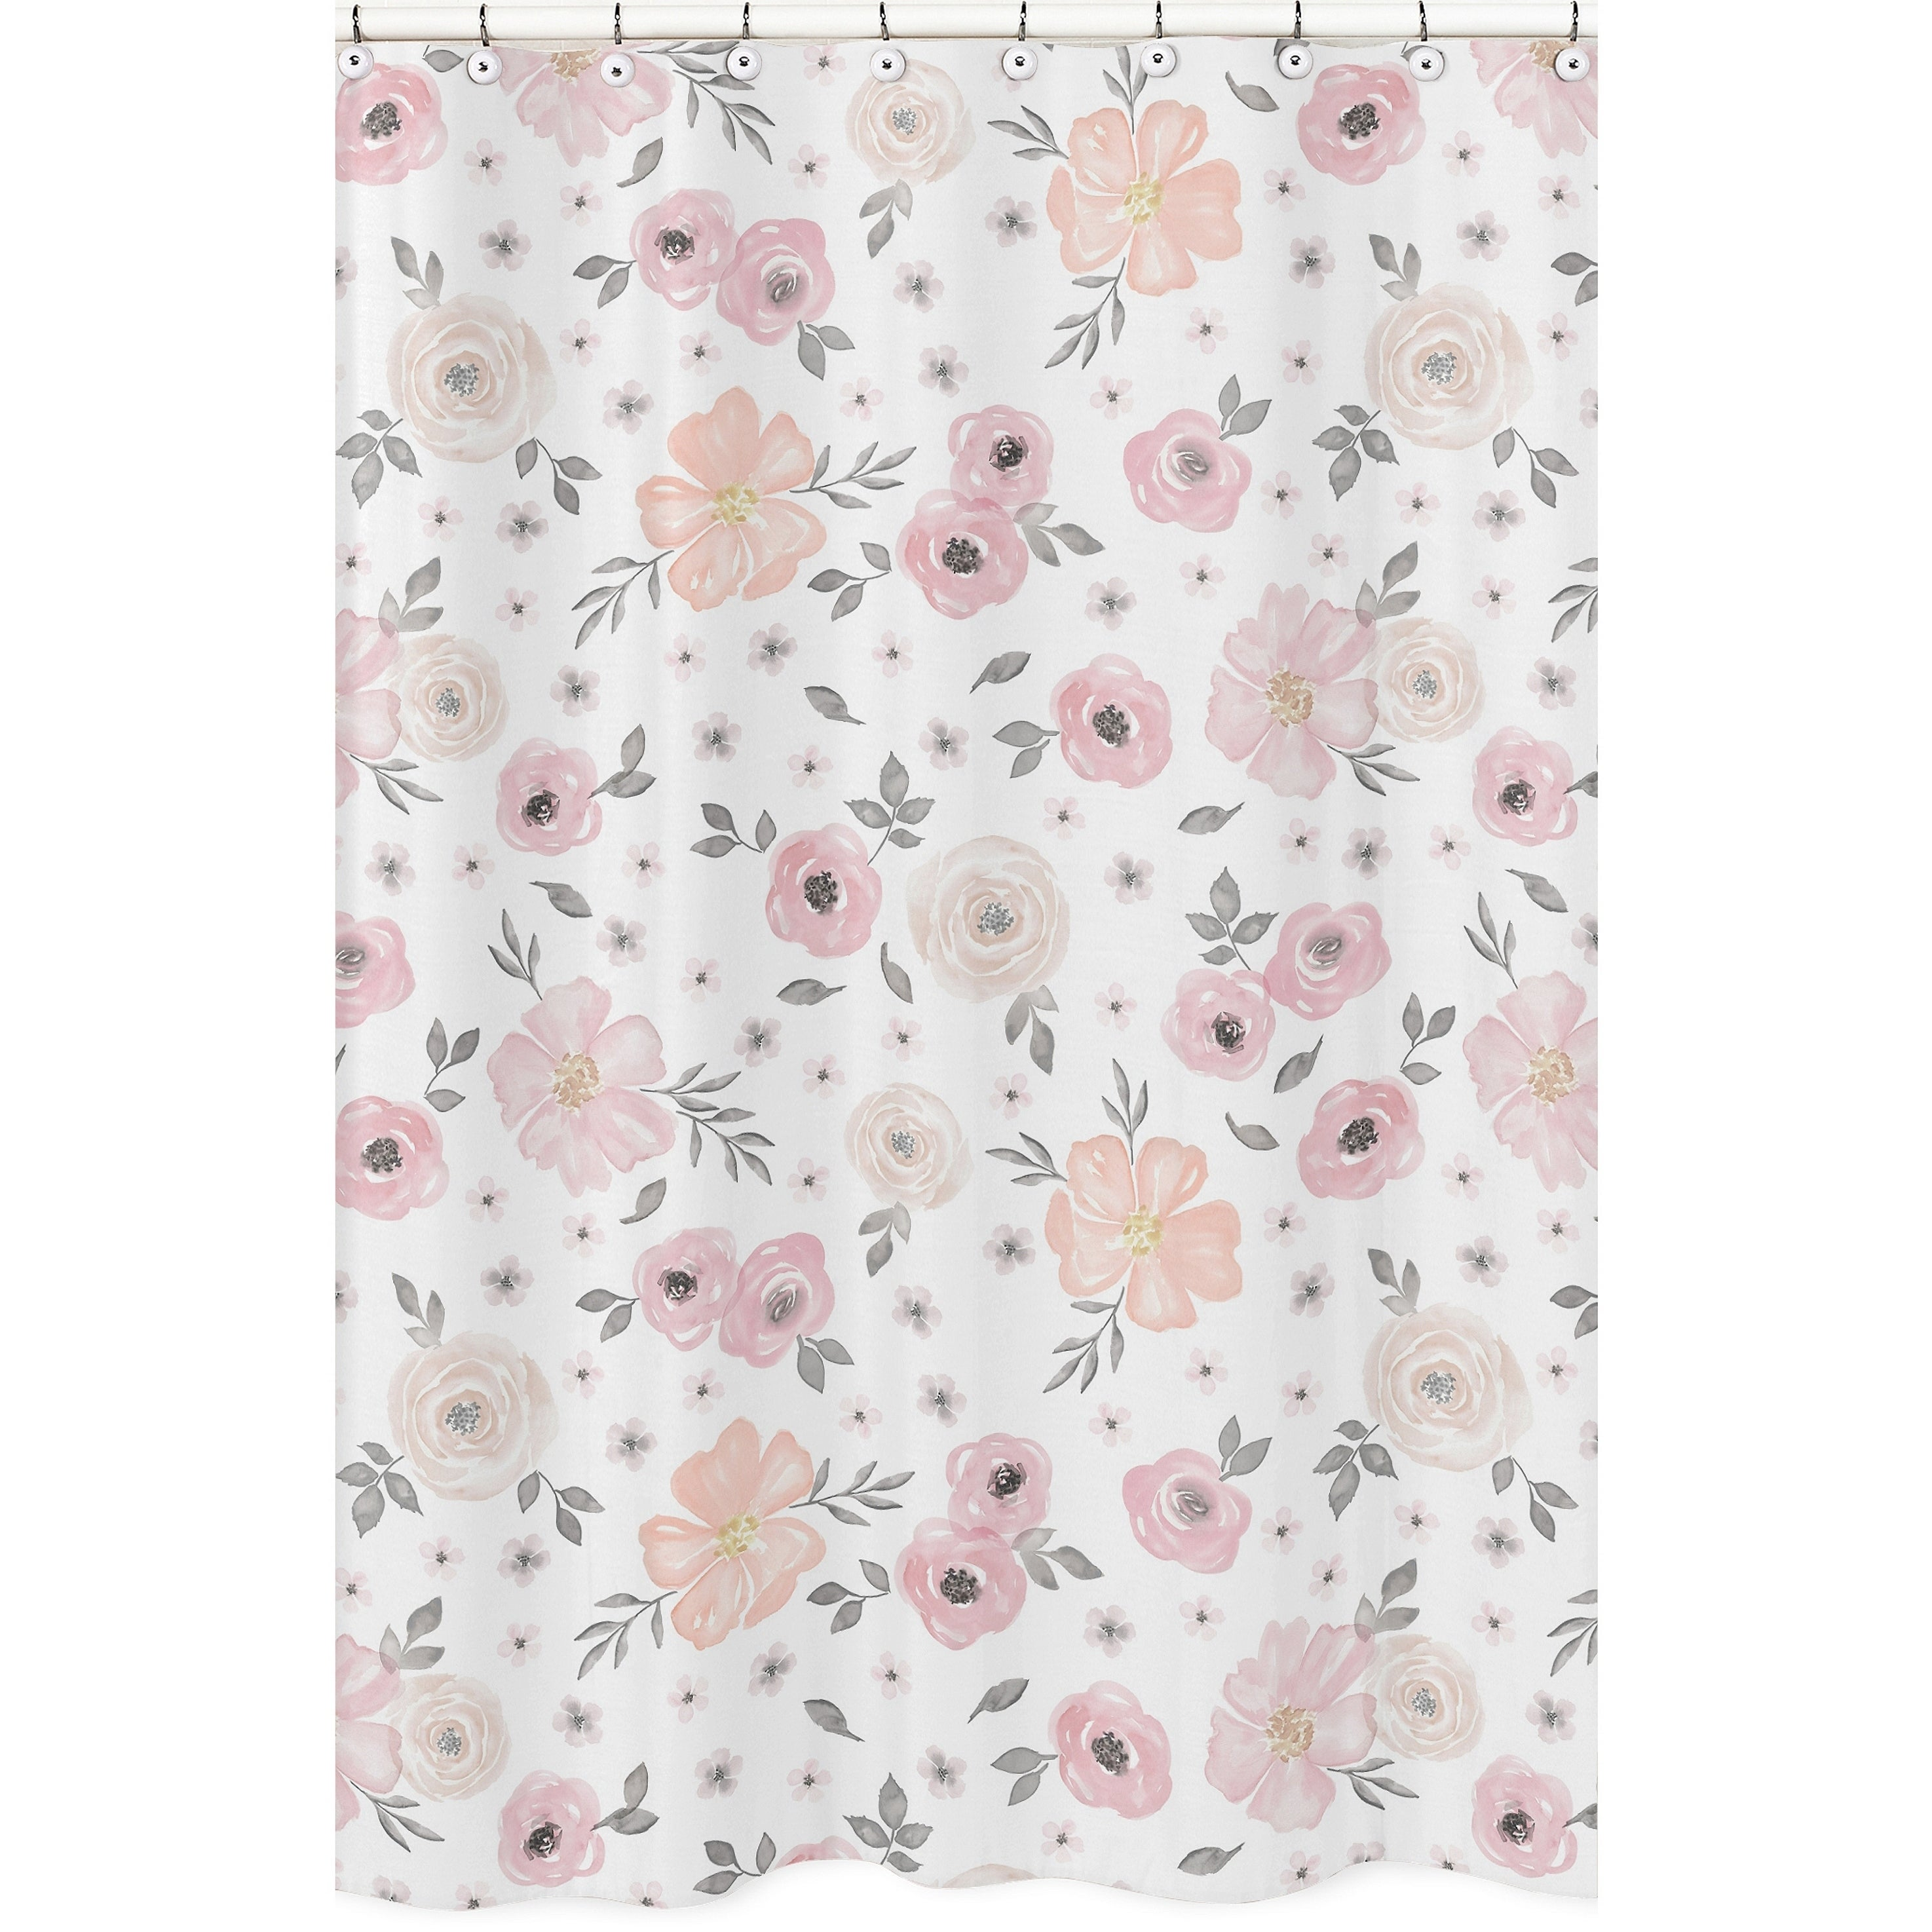 Sweet Jojo Designs Blush Pink, Grey and White Watercolor Floral Collection  Bathroom Fabric Bath Shower Curtain - Free Shipping On Orders Over $45 ...